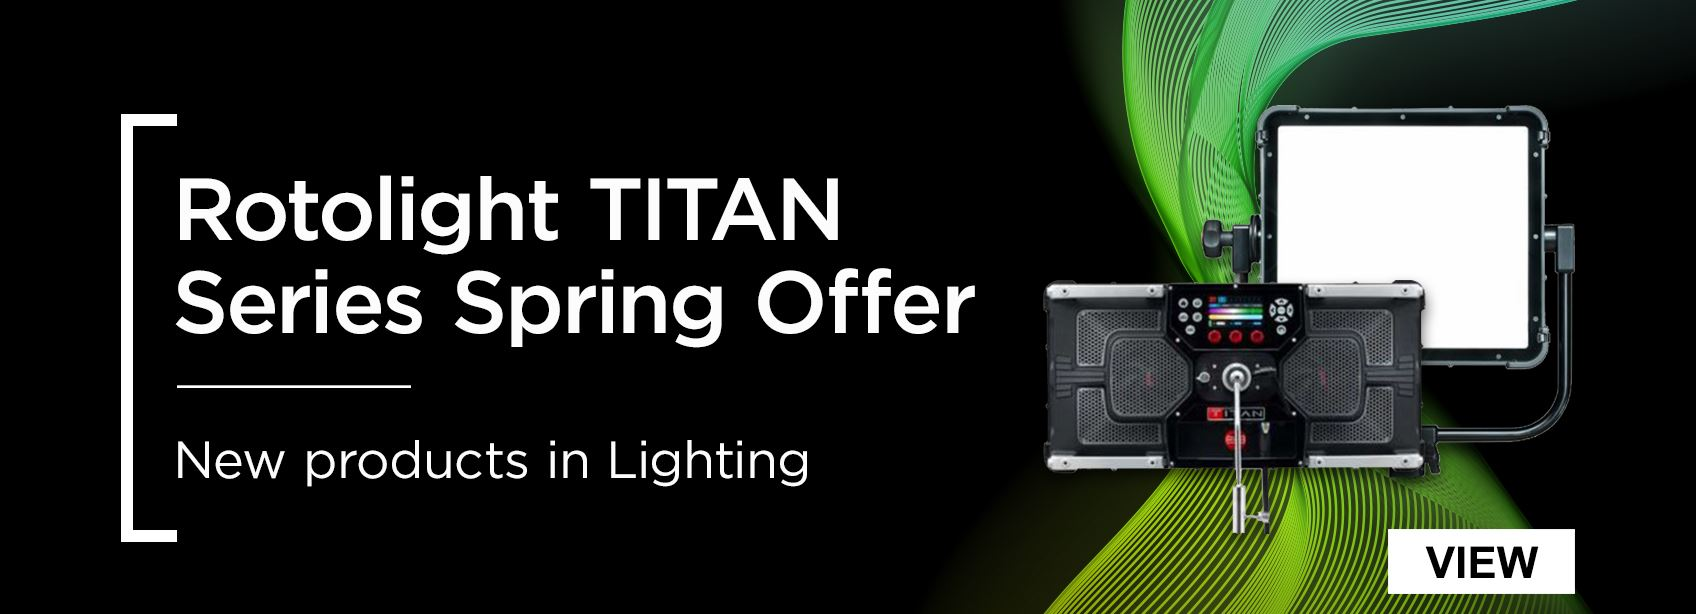 Huge Savings on the Rotolight Titan X1 and X2 this Spring